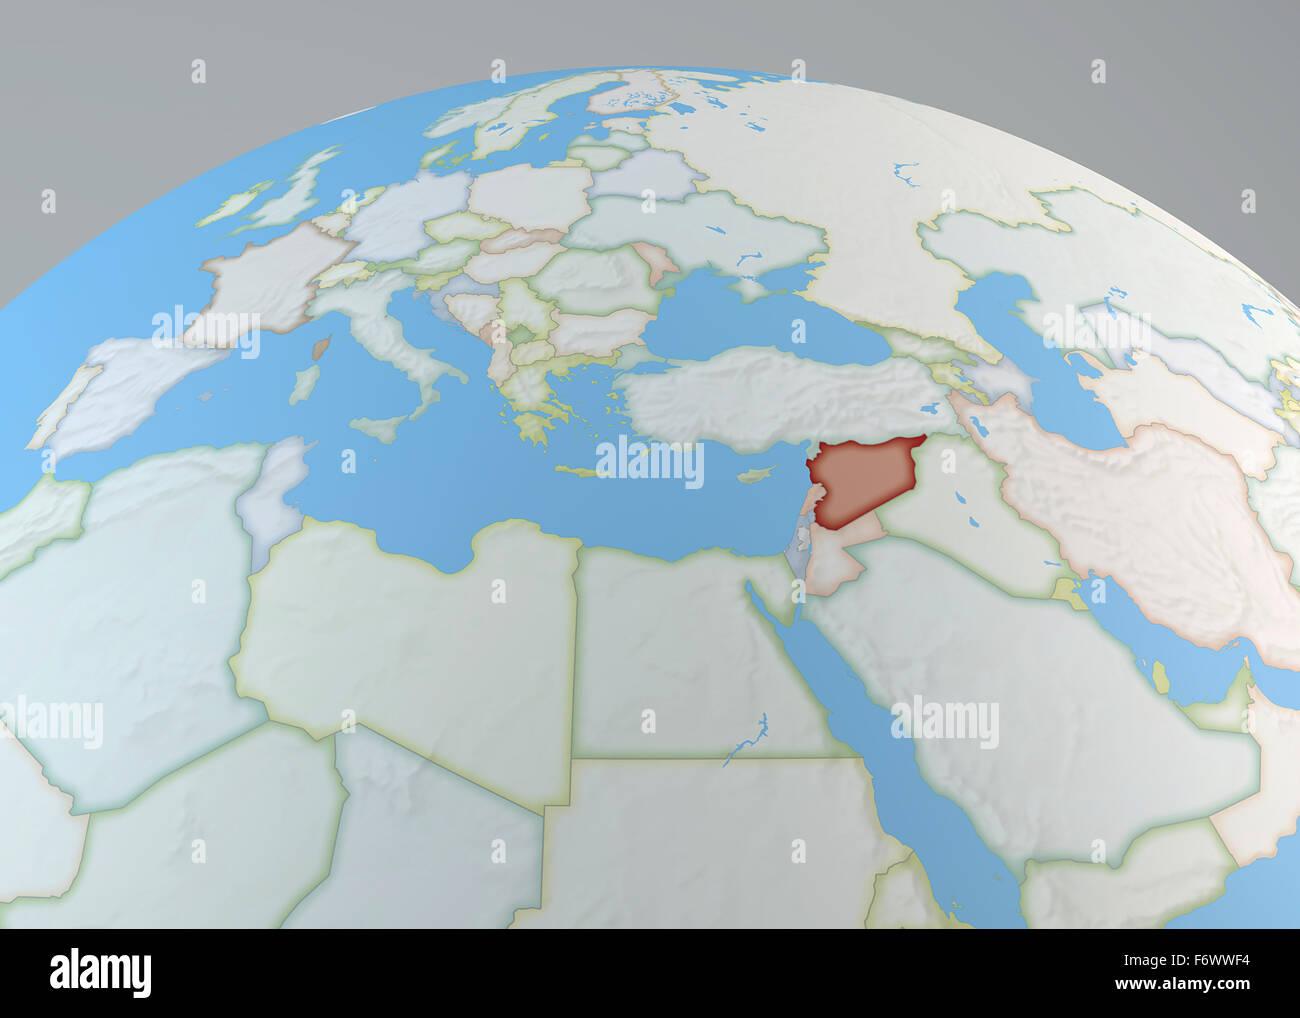 World map of middle east with syria highlighted north africa and world map of middle east with syria highlighted north africa and europe gumiabroncs Image collections